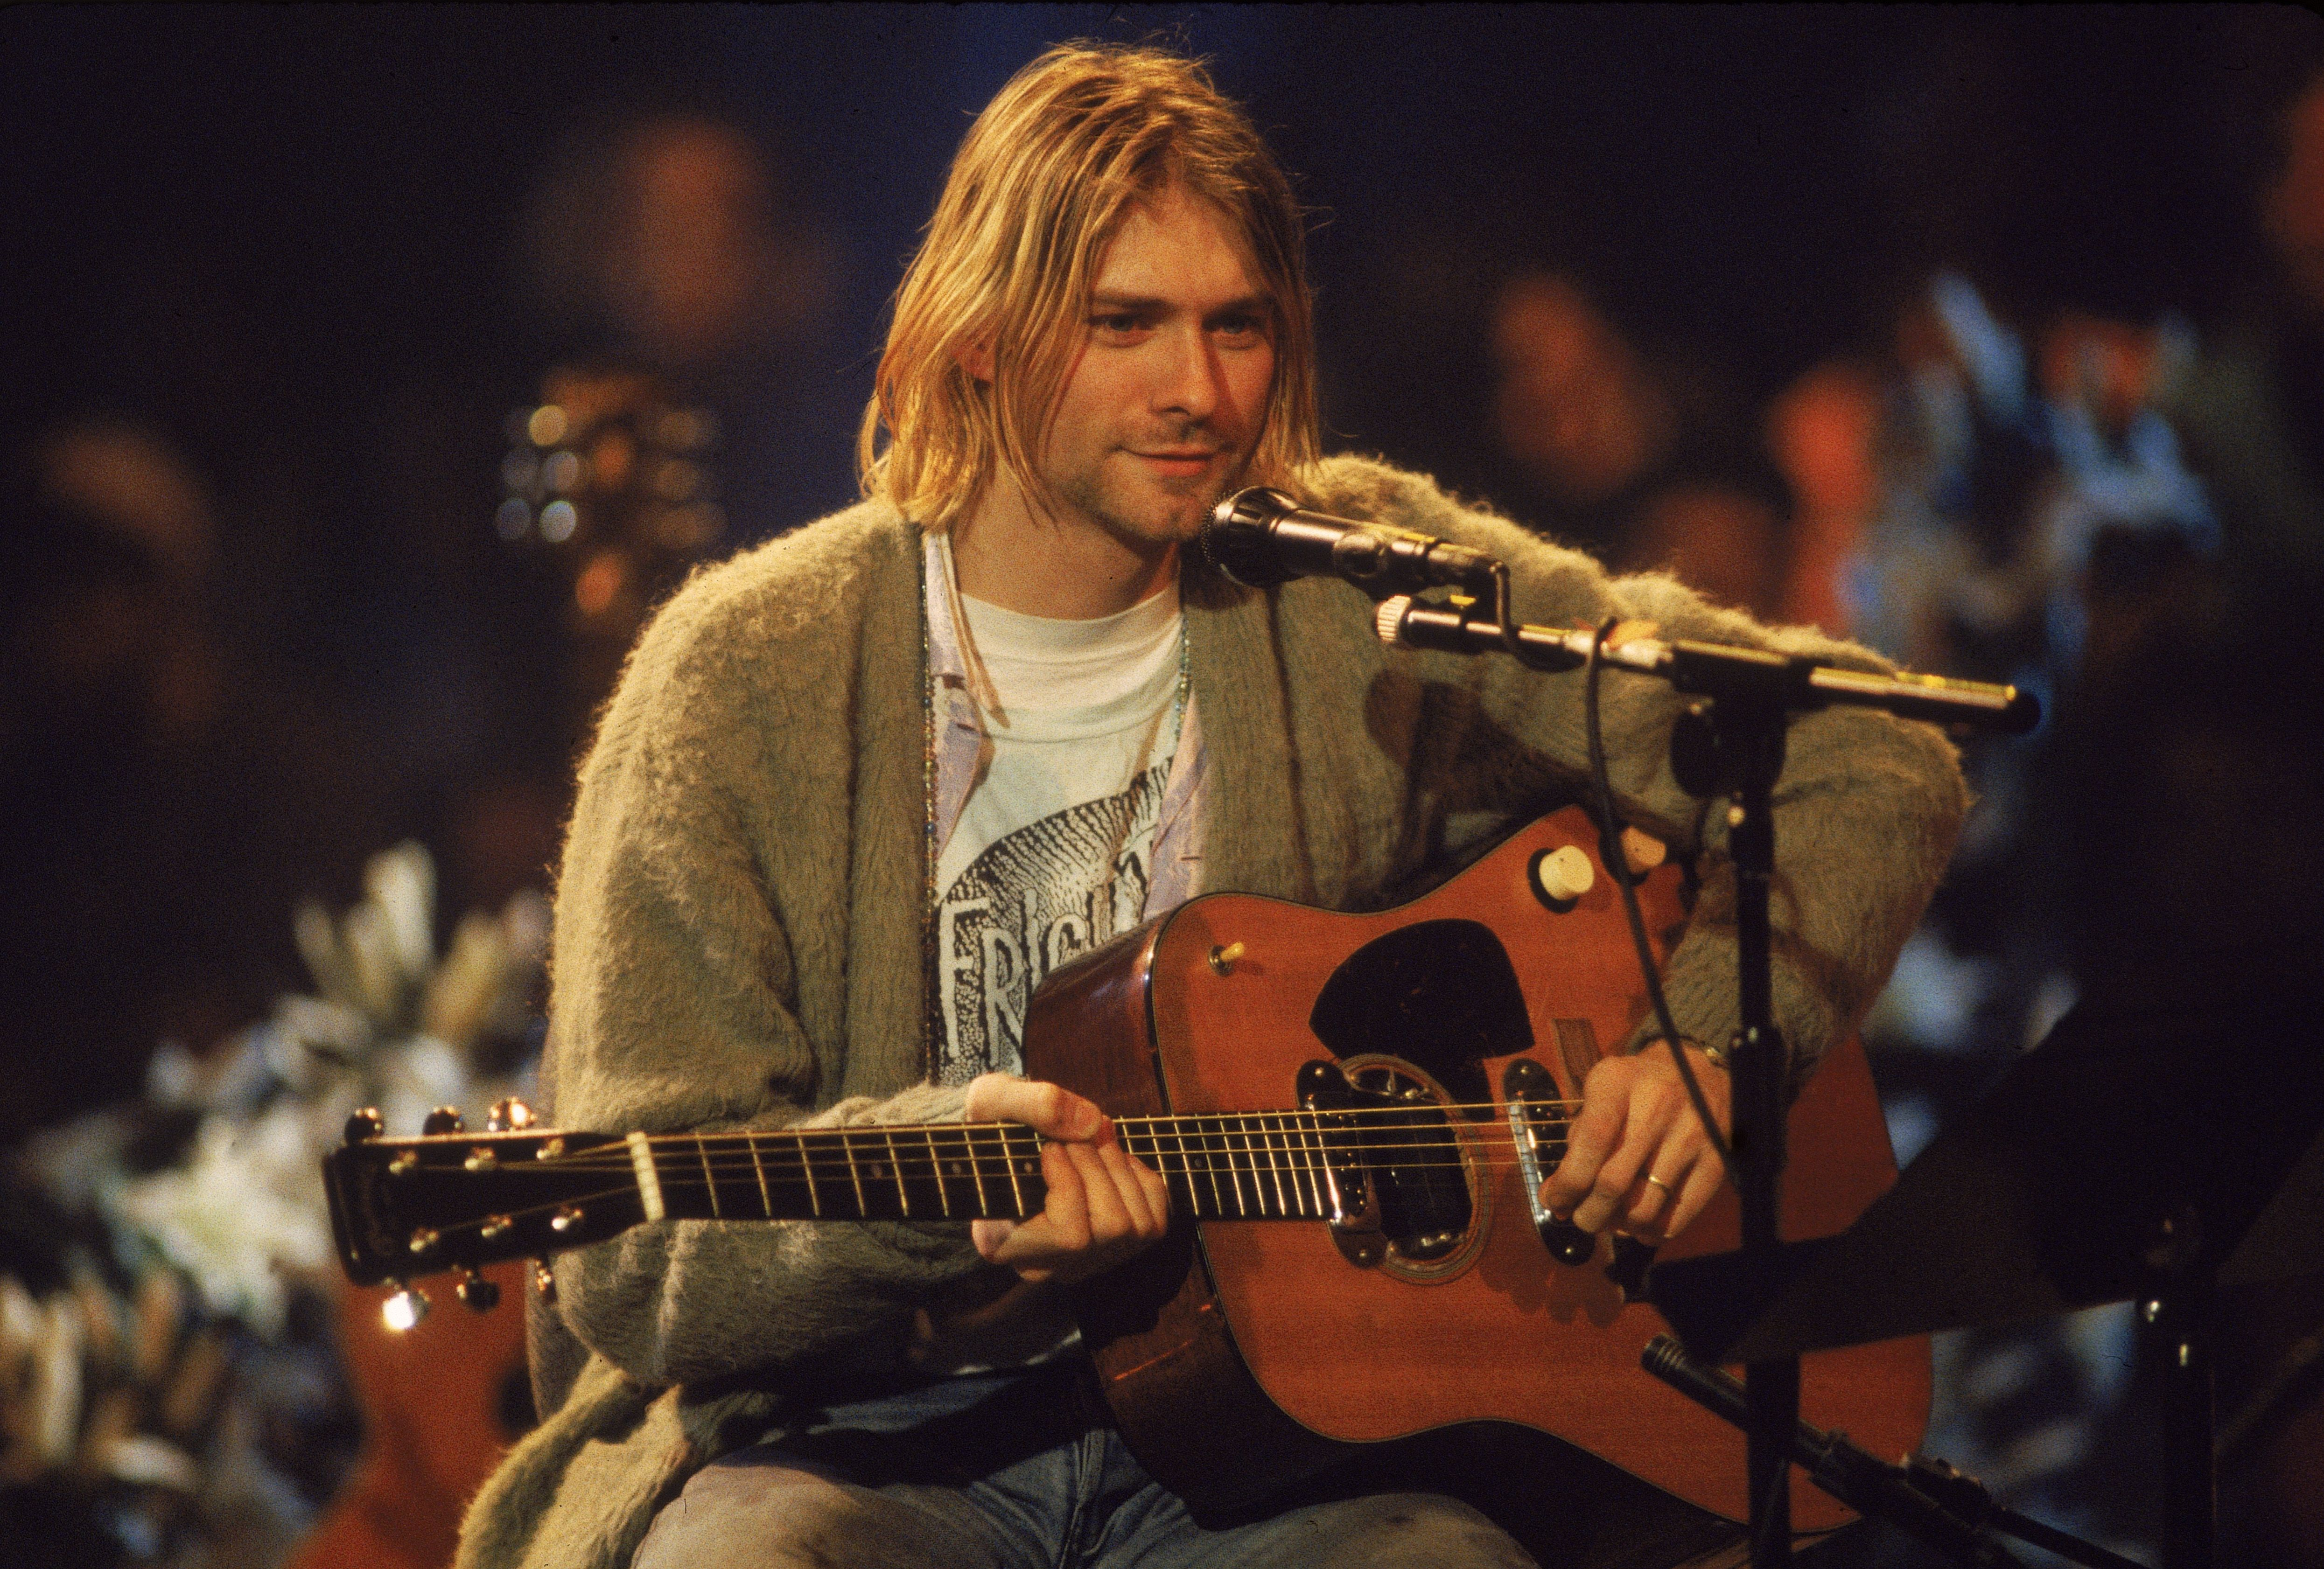 Kurt Cobain performng on 'MTV Unplugged,' in New York on November 18, 1993 | Source: Getty Images